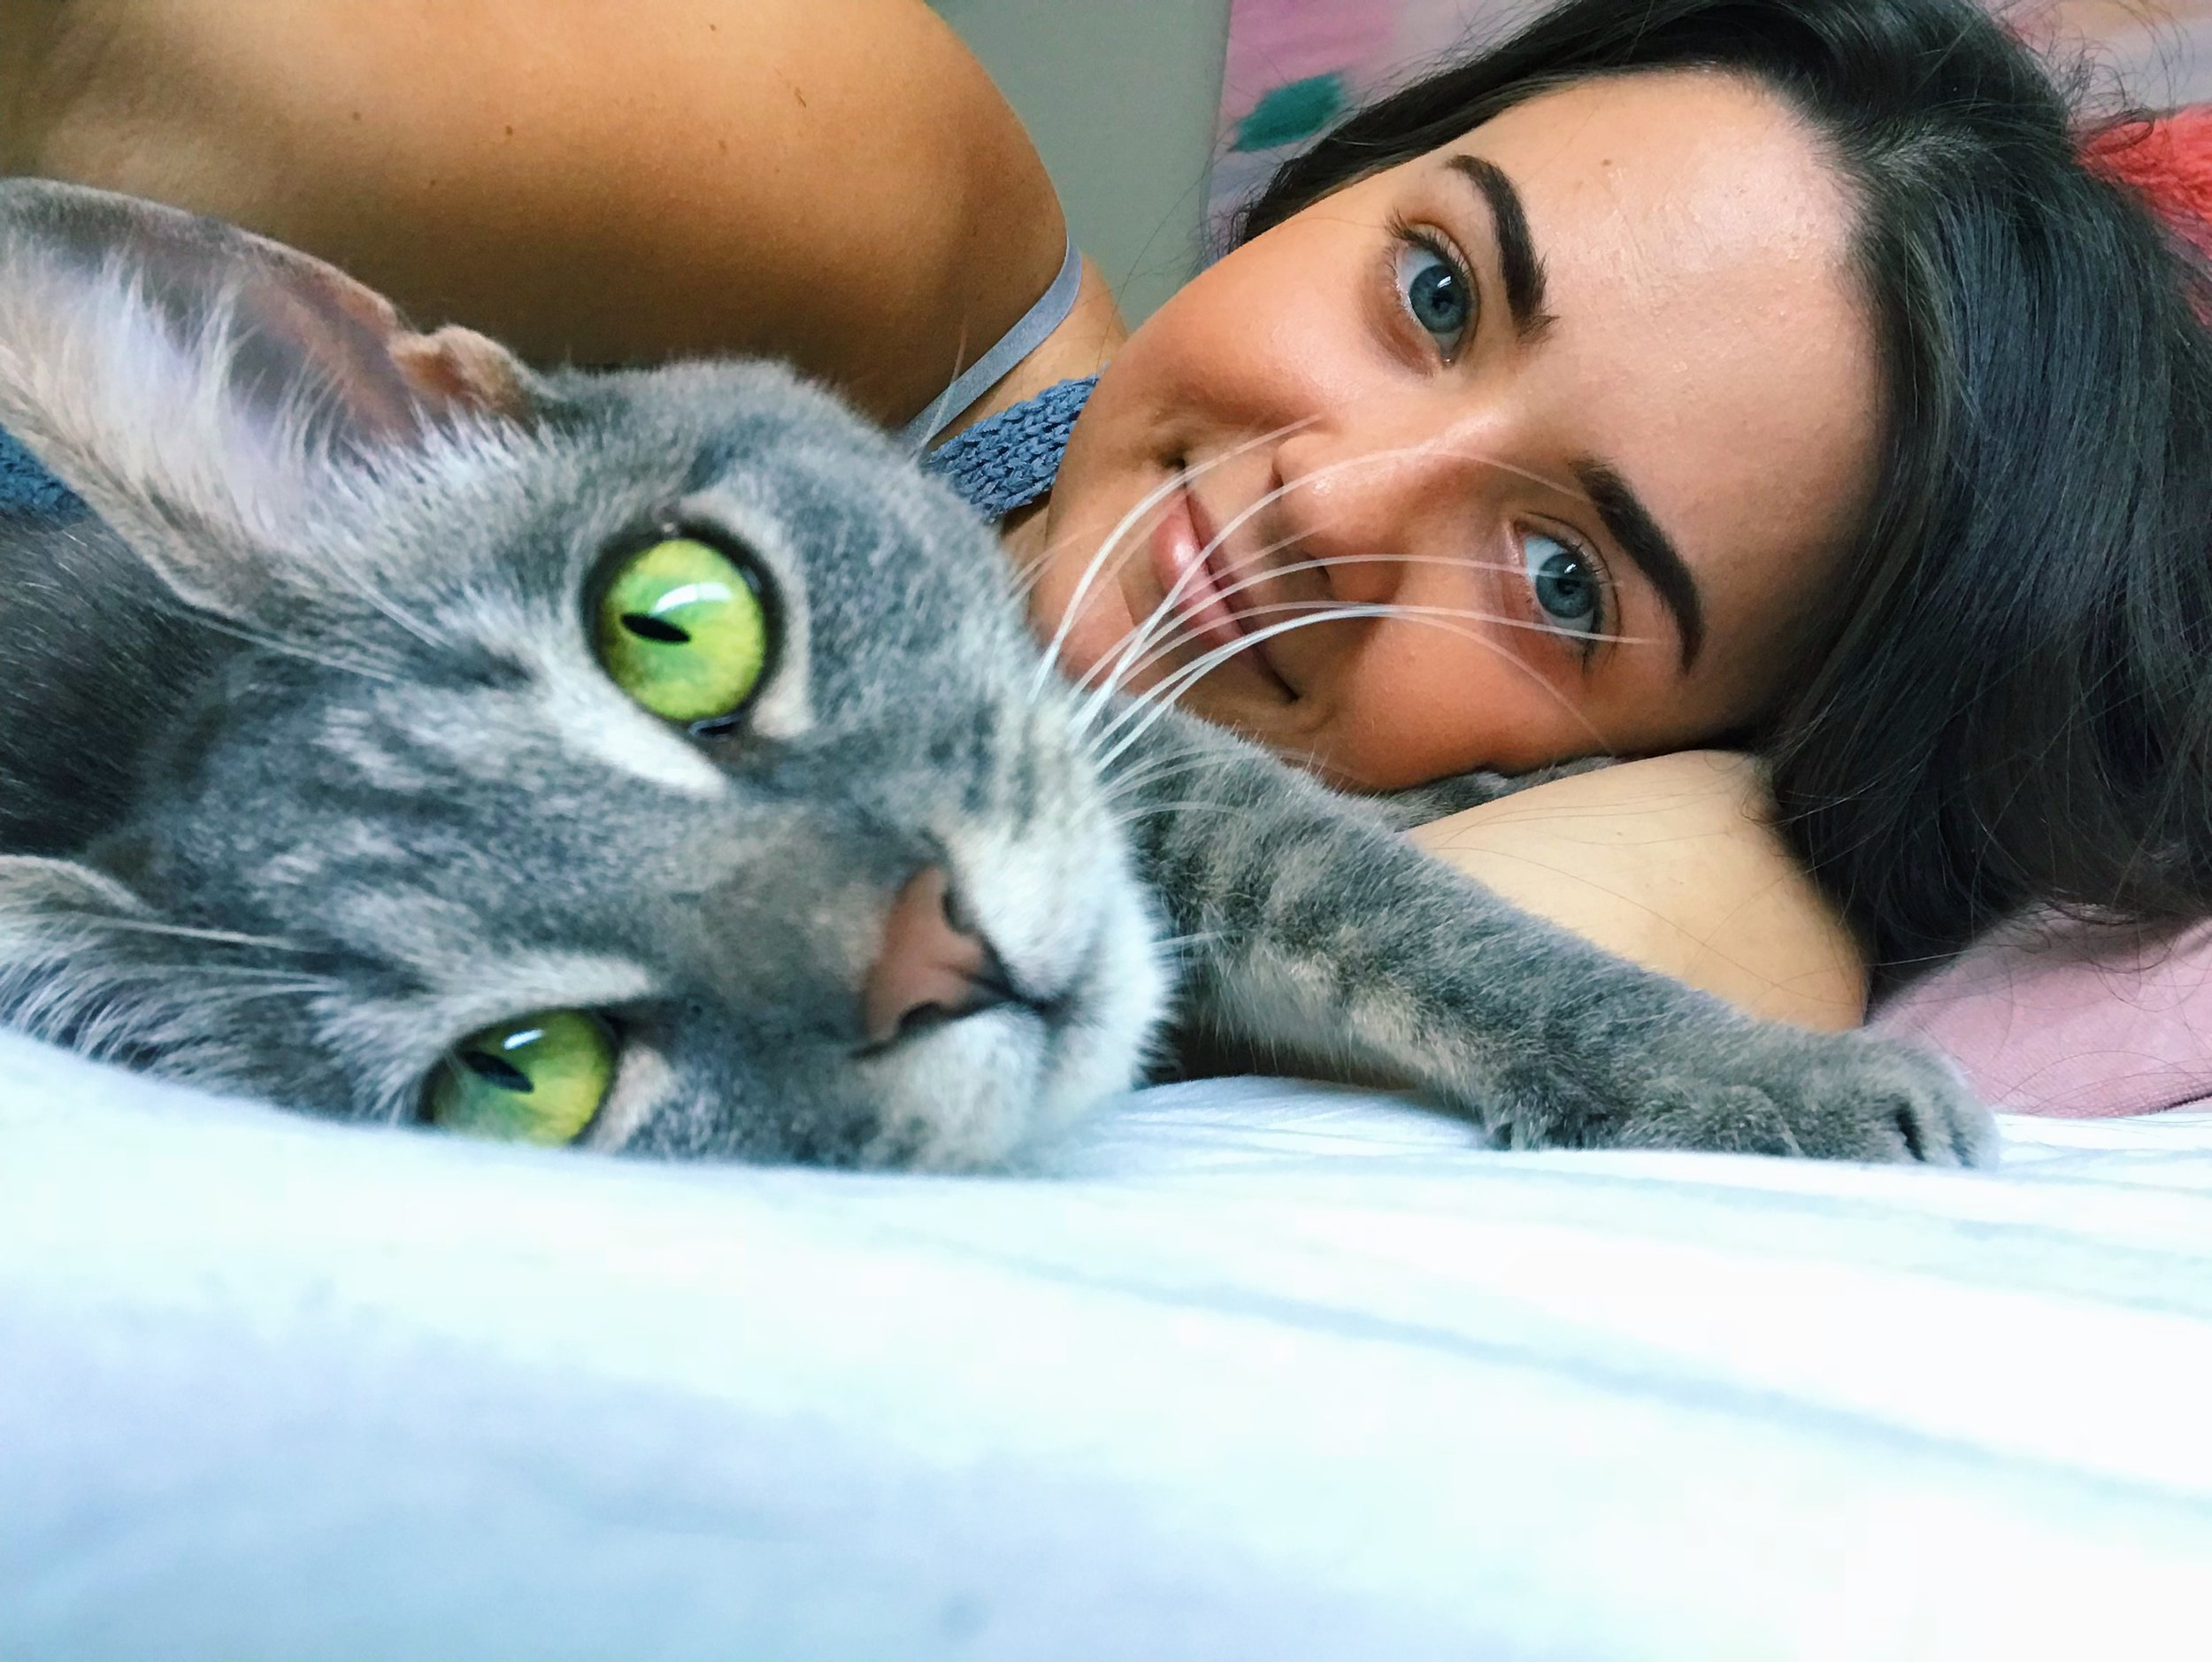 Daisy   6/20/19   Last Thursday on June 13th, I entered into my first serious and committed relationship.  I adopted a cat.  Her name is Daisy and I already love her more than words can express (yes we're moving pretty fast but what can I say…when you know you know)...